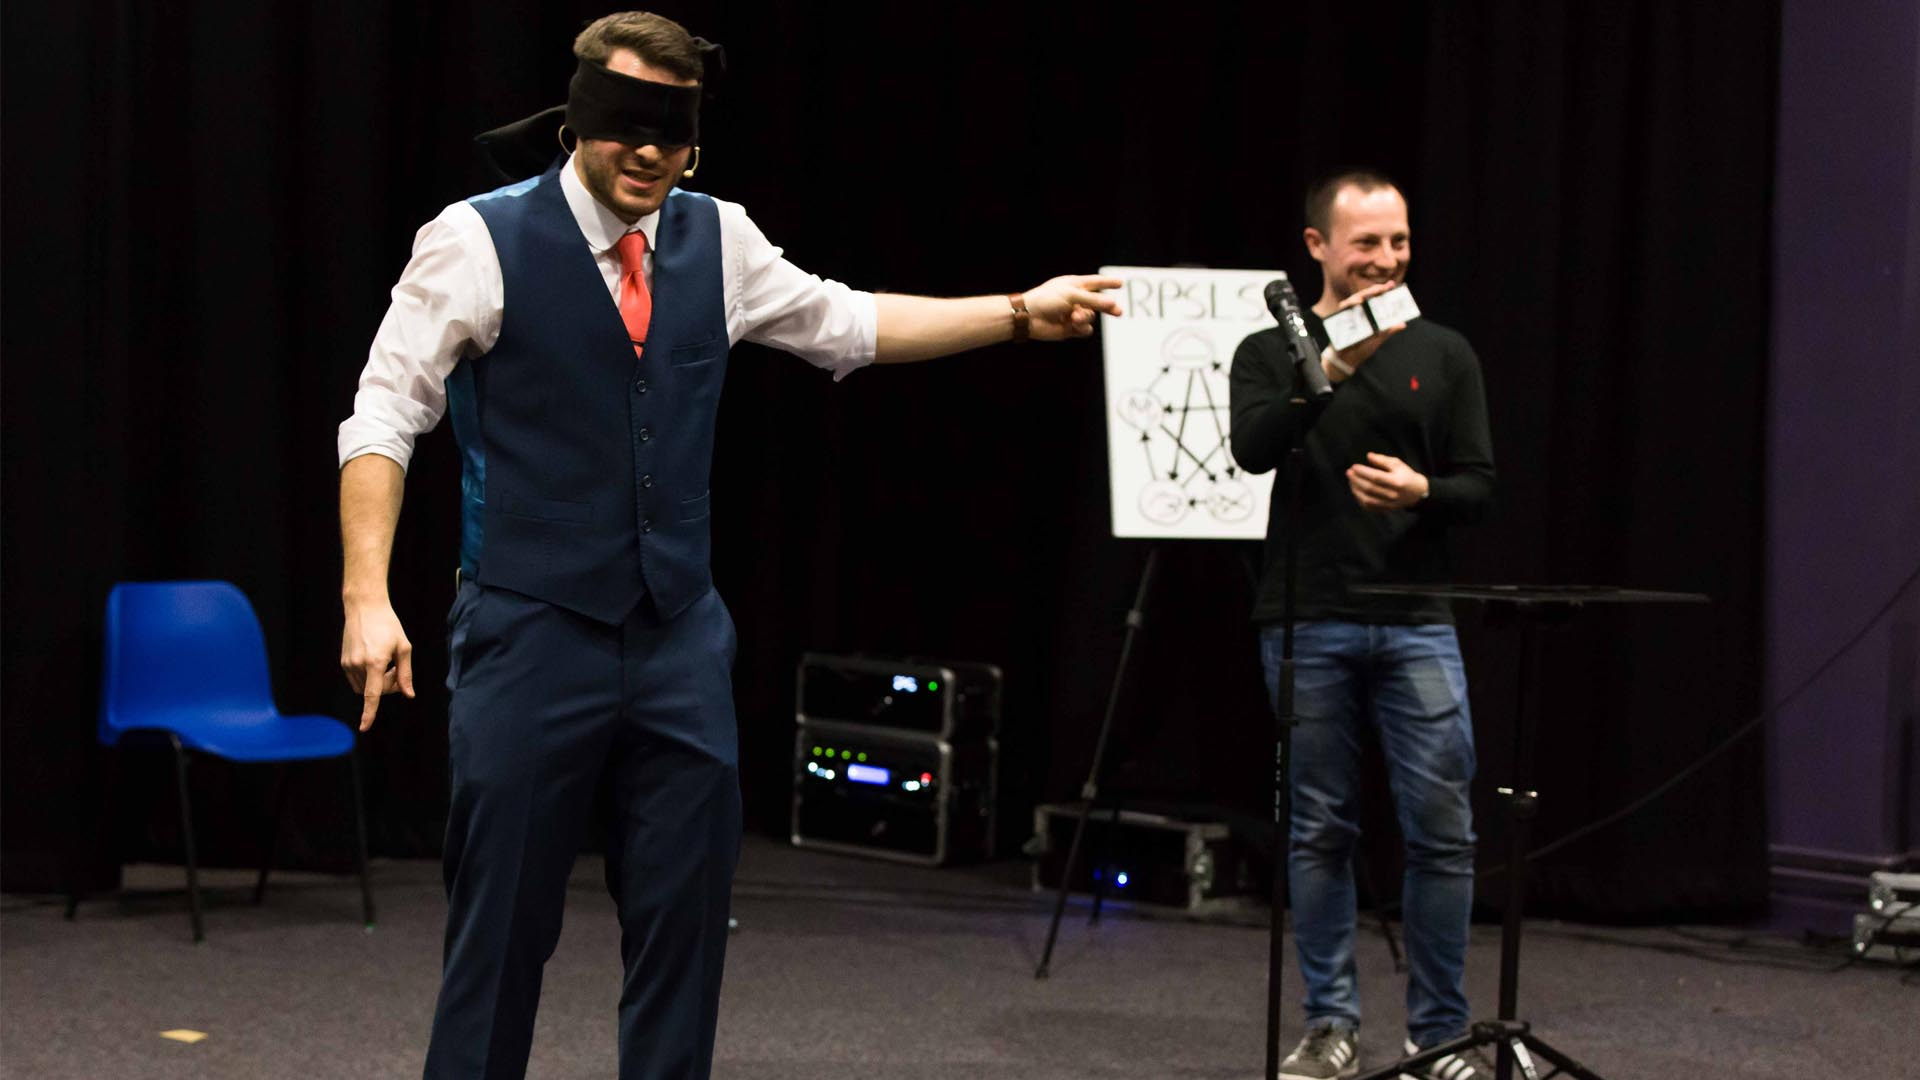 magic happens whilst blindfolded at the edinburgh fringe mind games